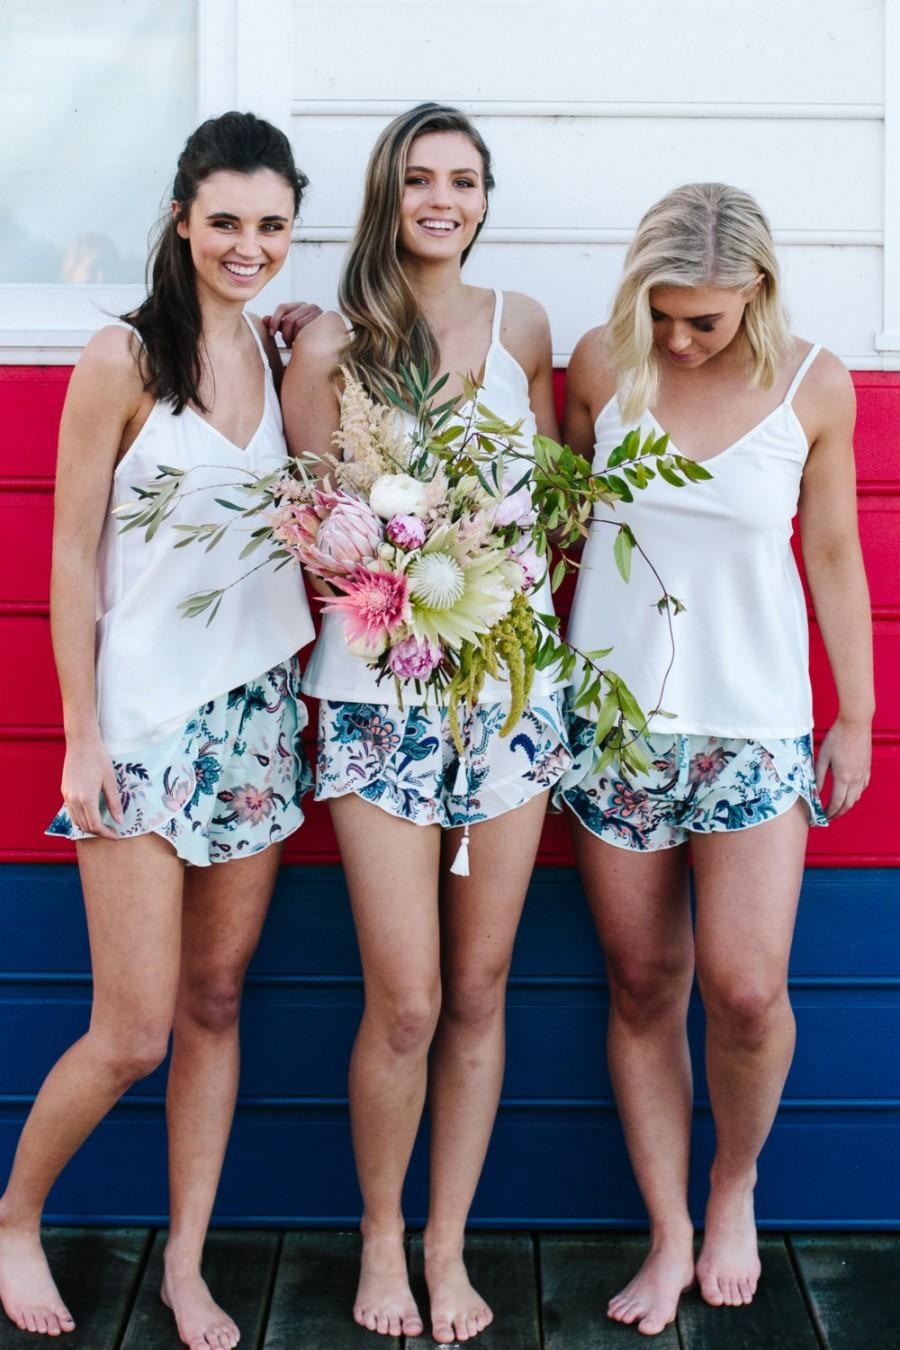 Wedding - Bridesmaid Gifts  Shorts for Brides and Bridesmaids  Will You Be My Bridesmaid  Bridesmaid Pyjamas